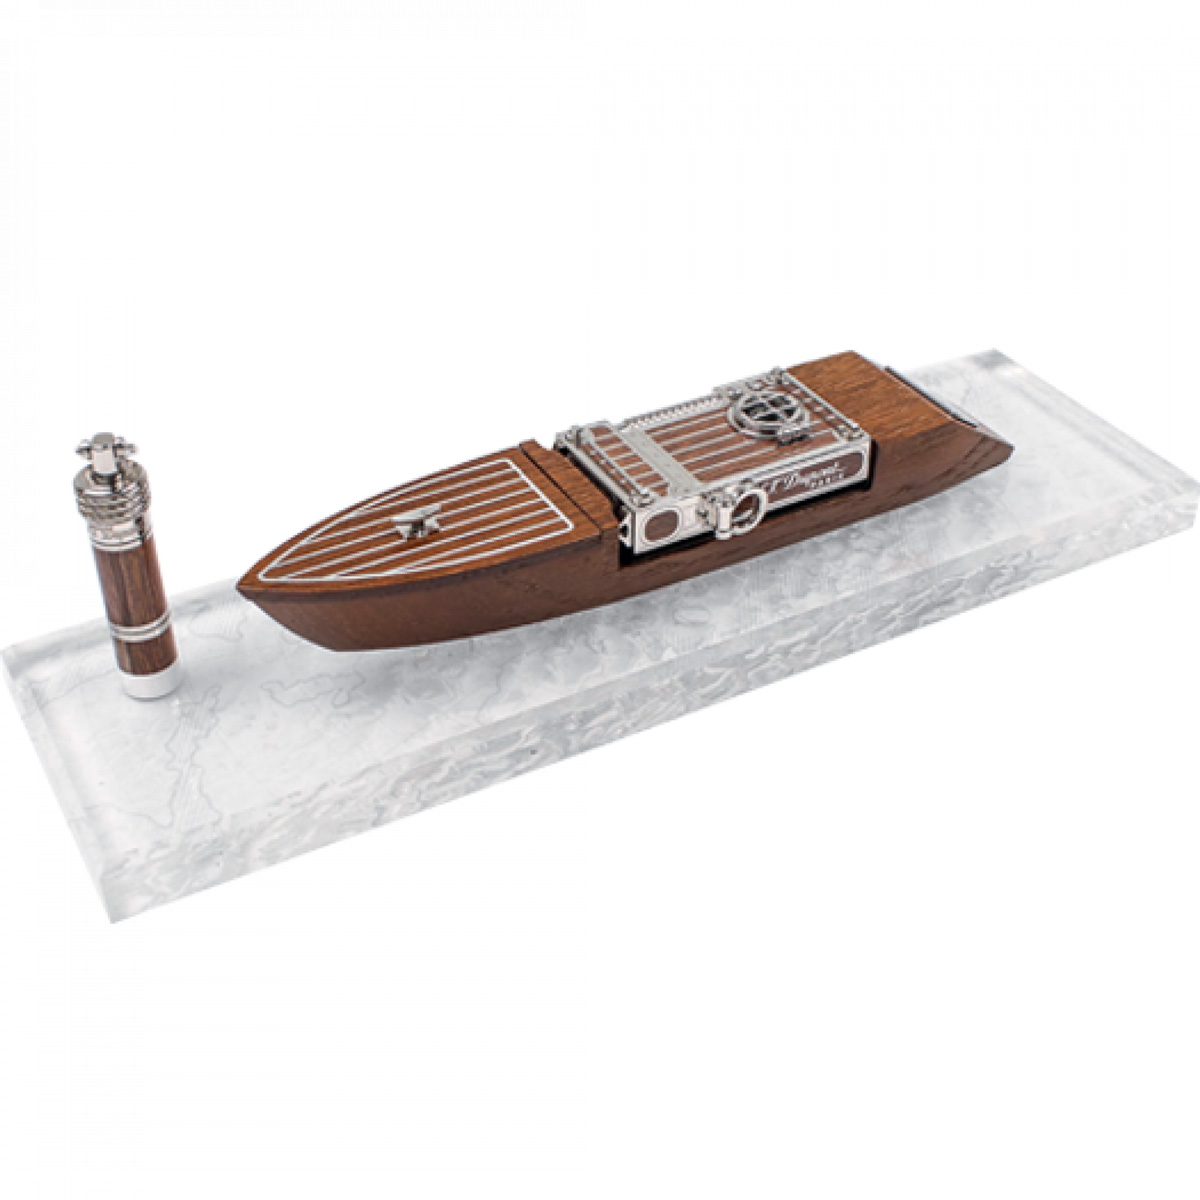 ST Dupont Seven Seas Lighter Smoking Kit - Limited Edition